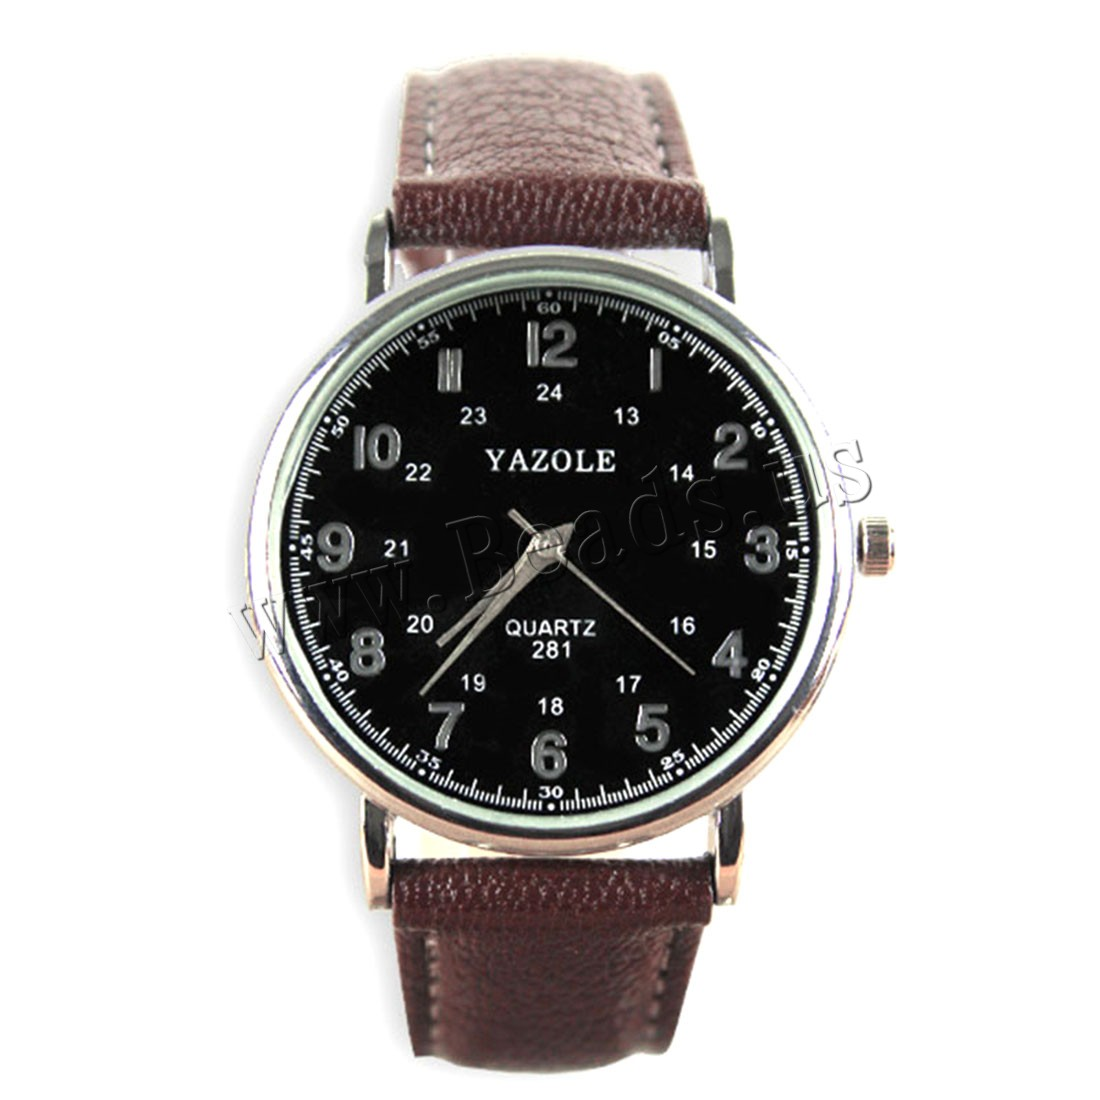 Buy Yazole® Unisex Jewelry Watch Cowhide Glass & Zinc Alloy plated adjustable nickel lead & cadmium free Approx 9 Inch Sold PC